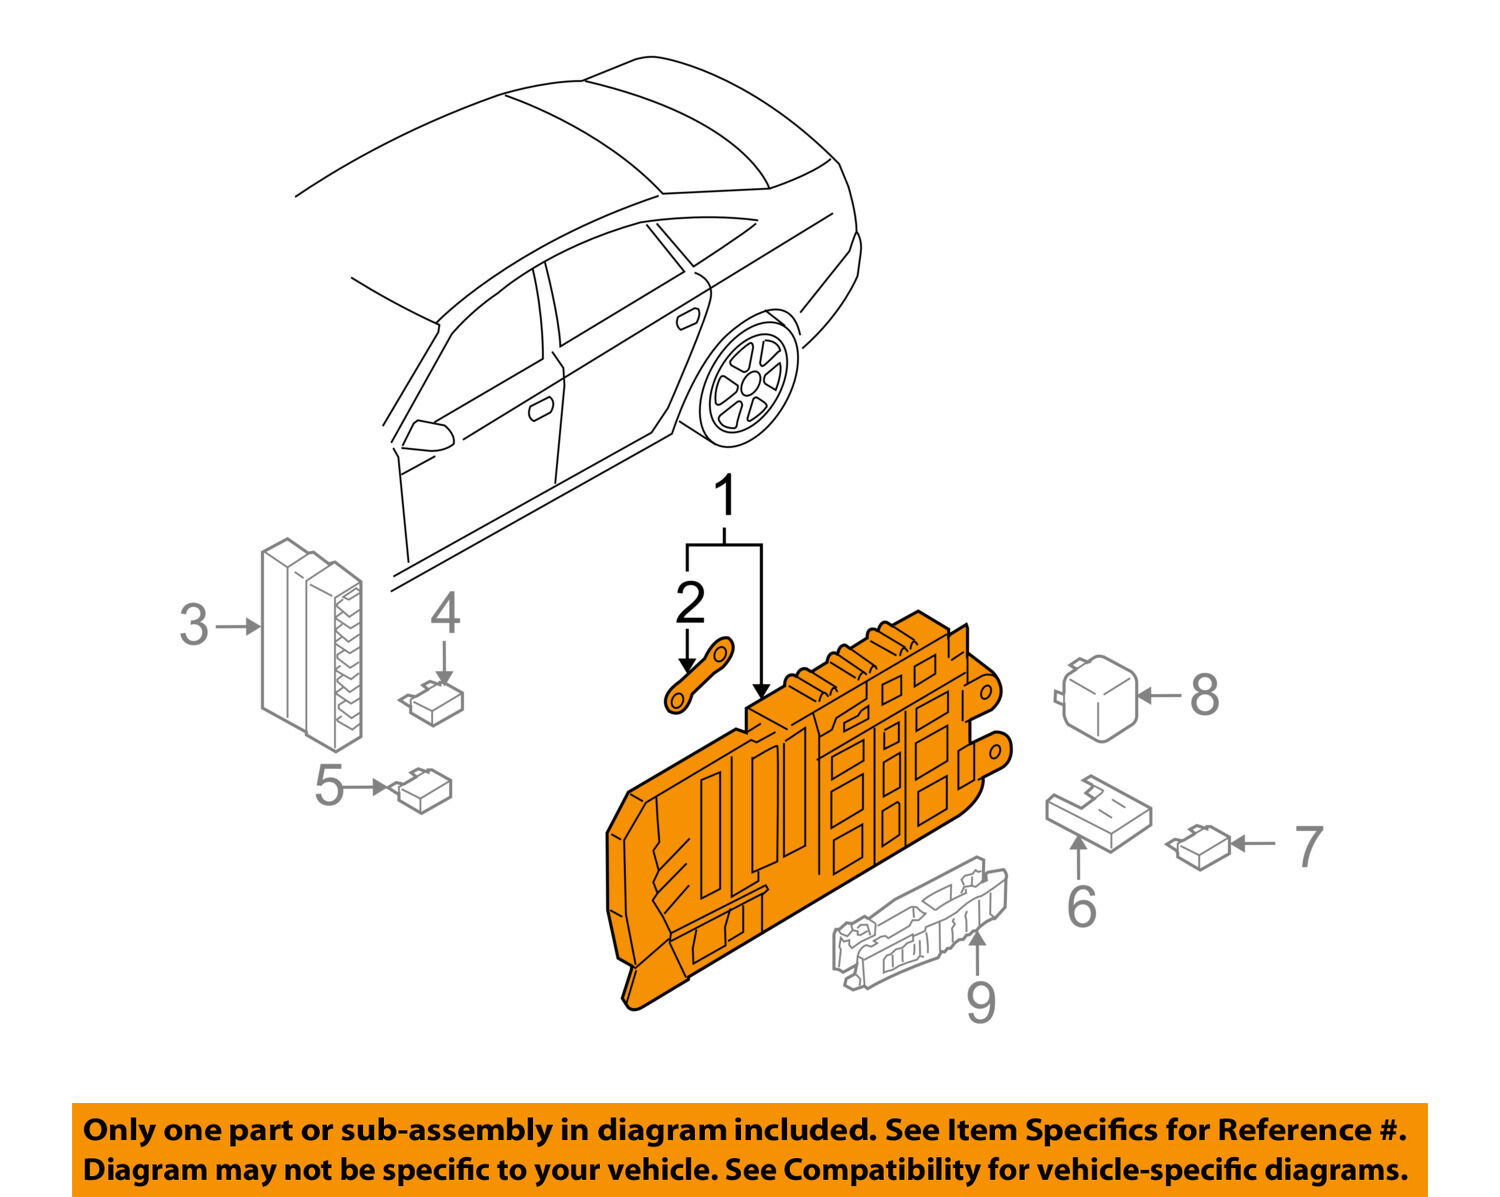 Audi Oem 05 06 A6 Quattro Electrical Fuse Relay Box 4f0971845 2006 1 Of 2free Shipping